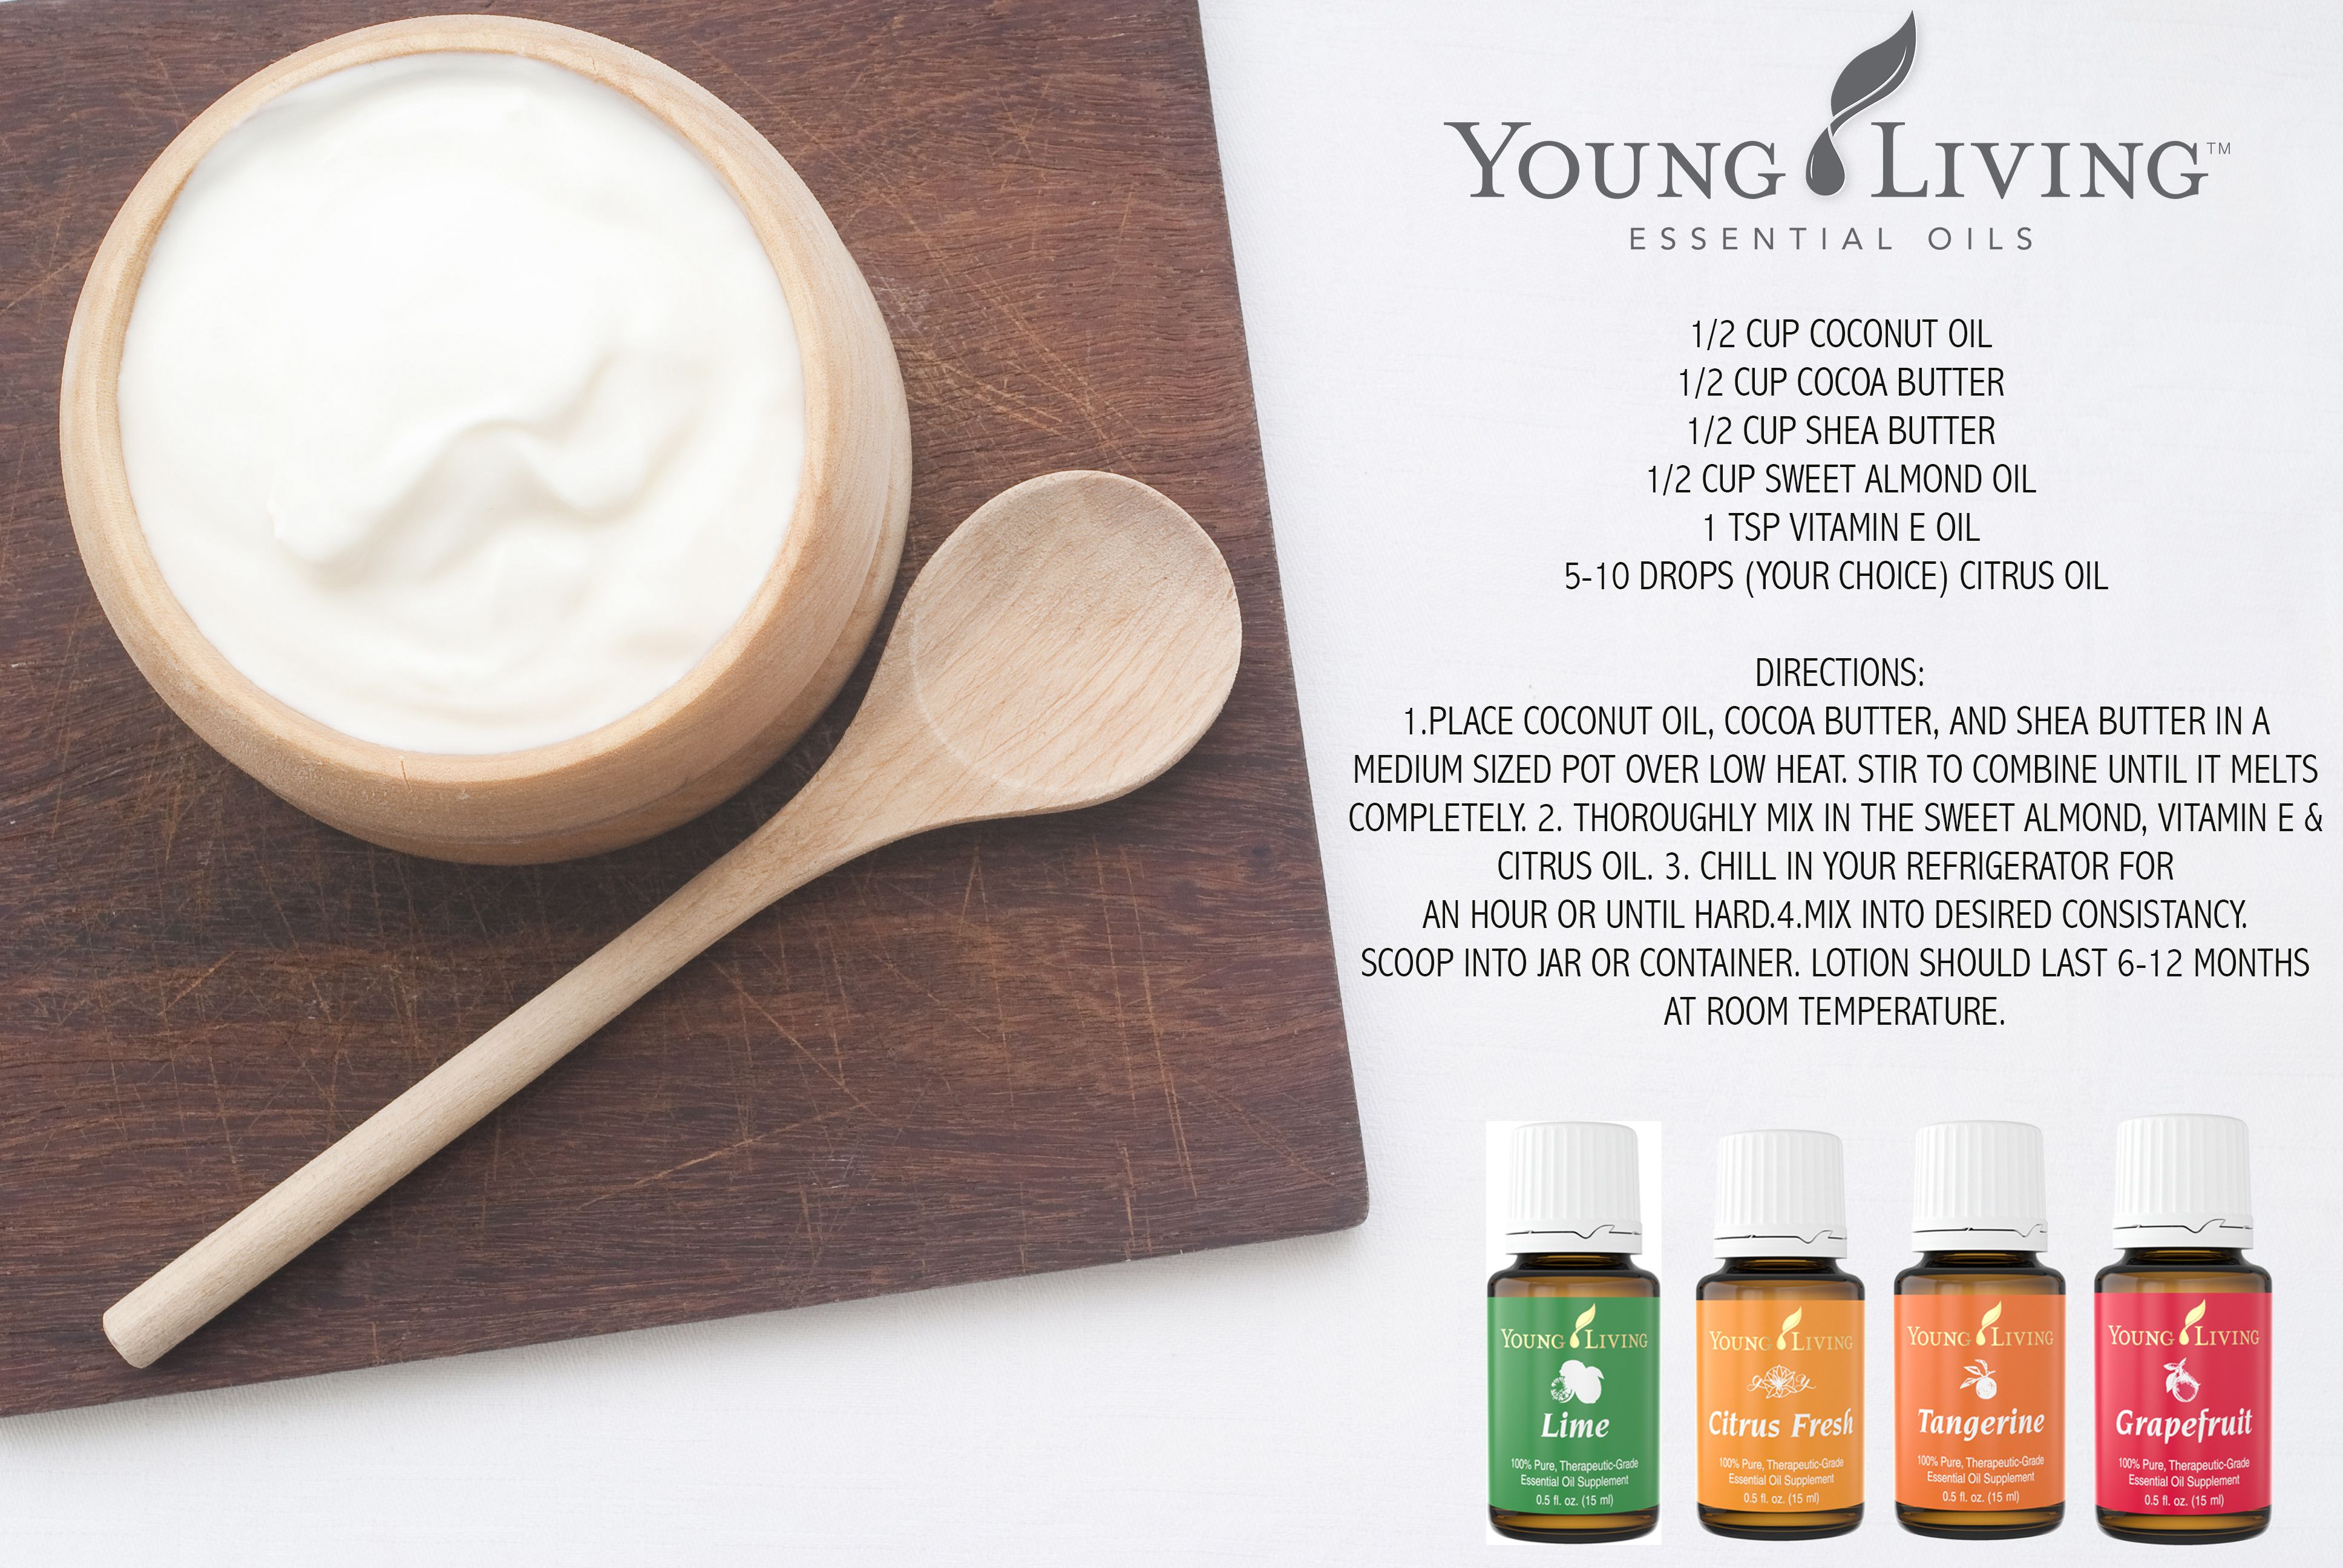 Diy lotion 12 cup coconut oil 12 cup cocoa butter 12